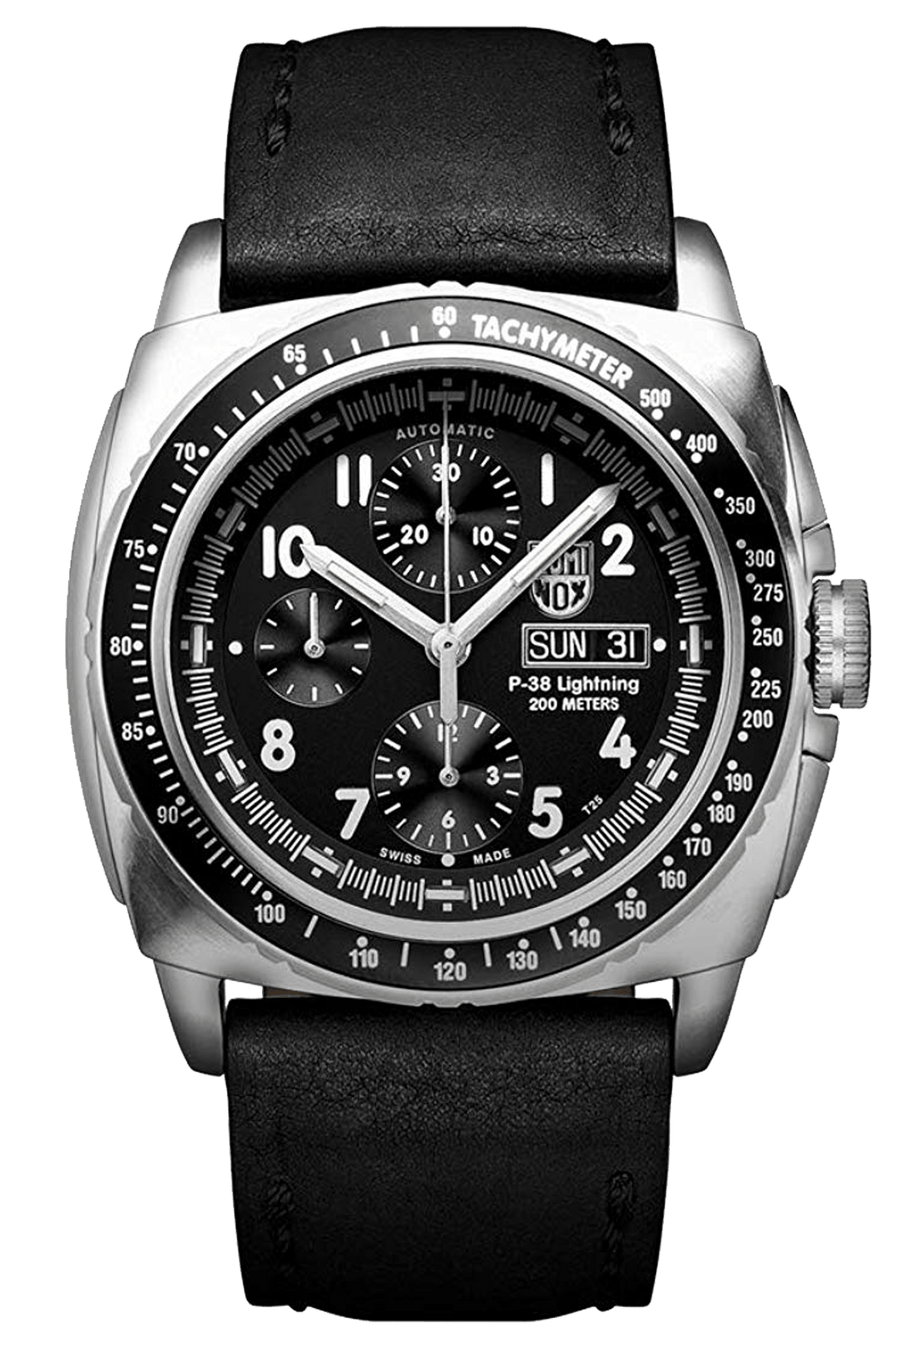 P-38 Lightning Automatic Chronograph - 9461